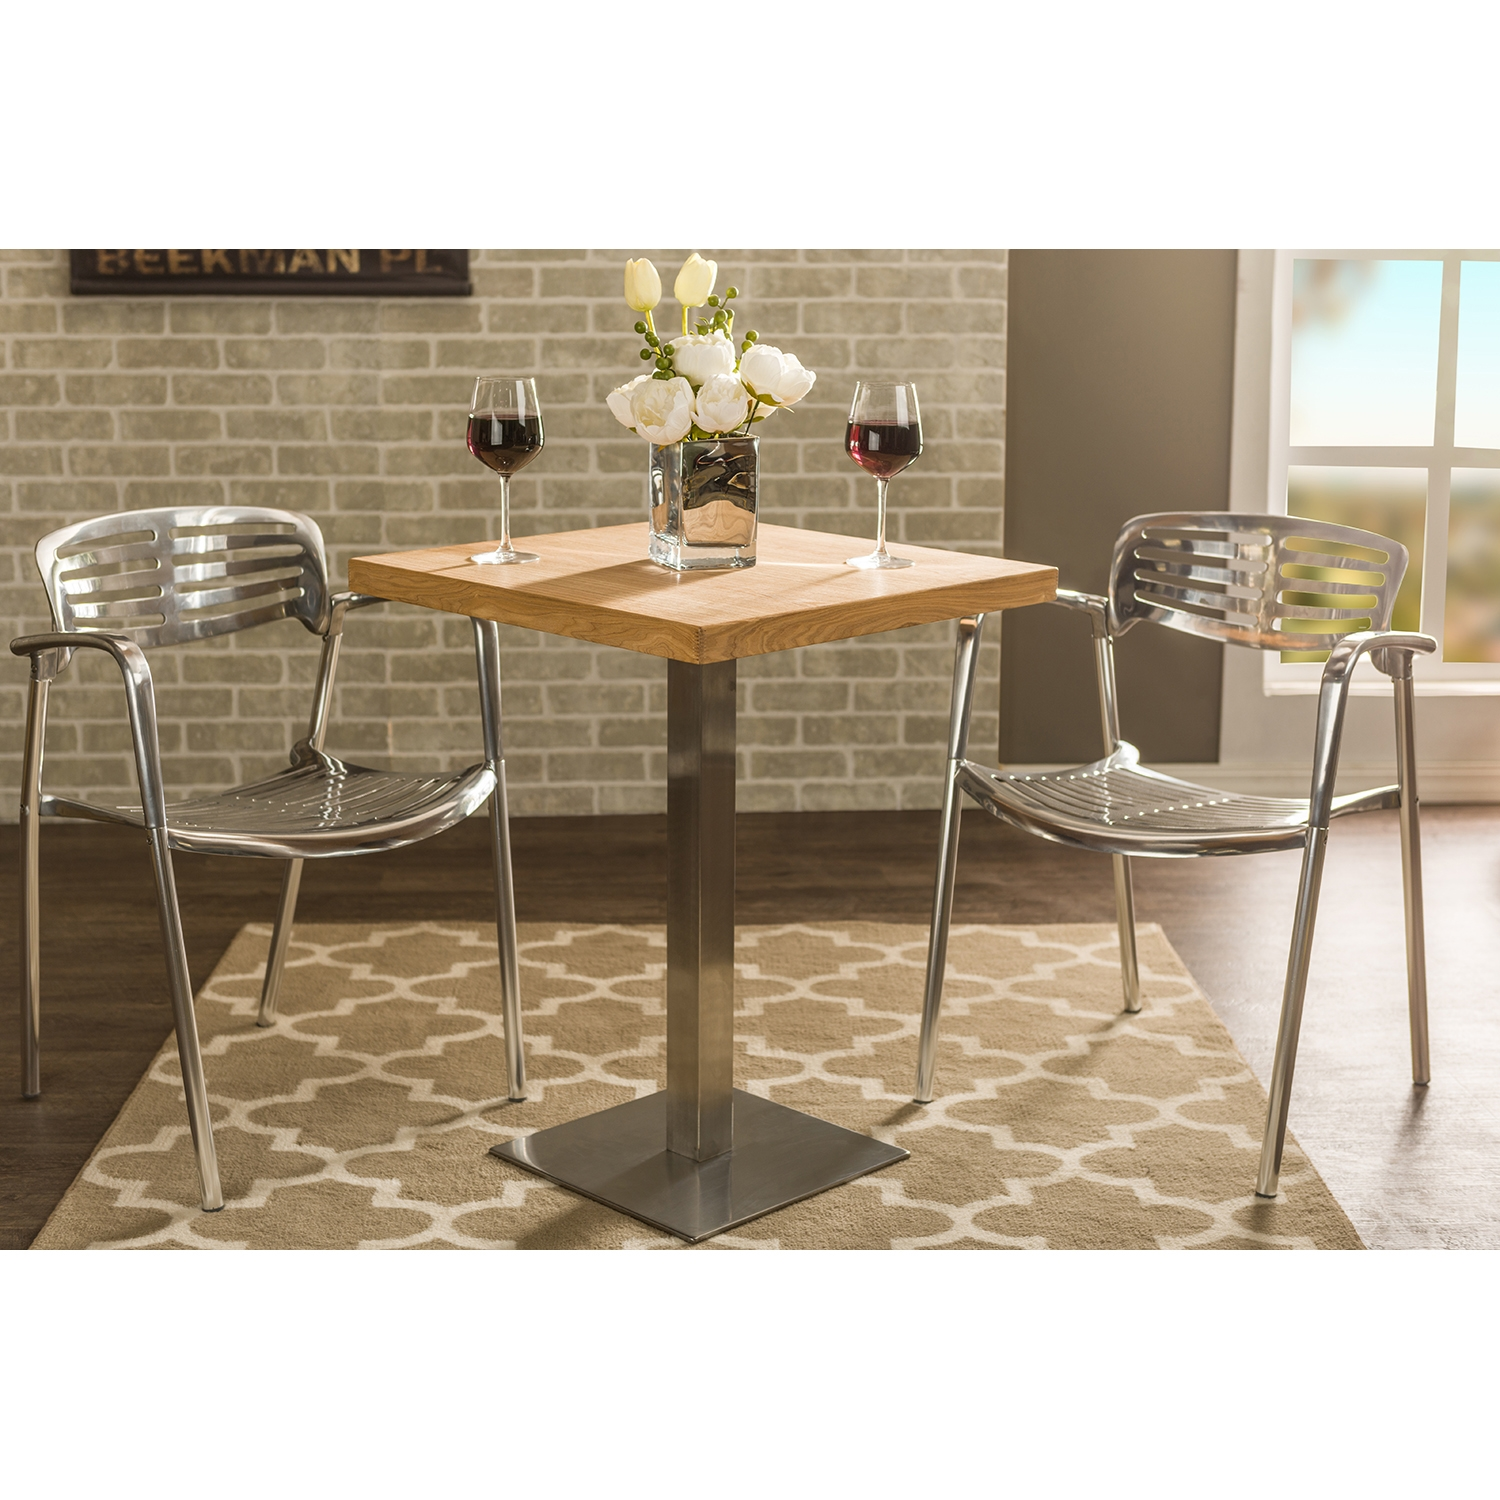 ... Baxton Studio Owen 24 Inch Square Natural Top Bistro Table With Chrome  Base   IEM